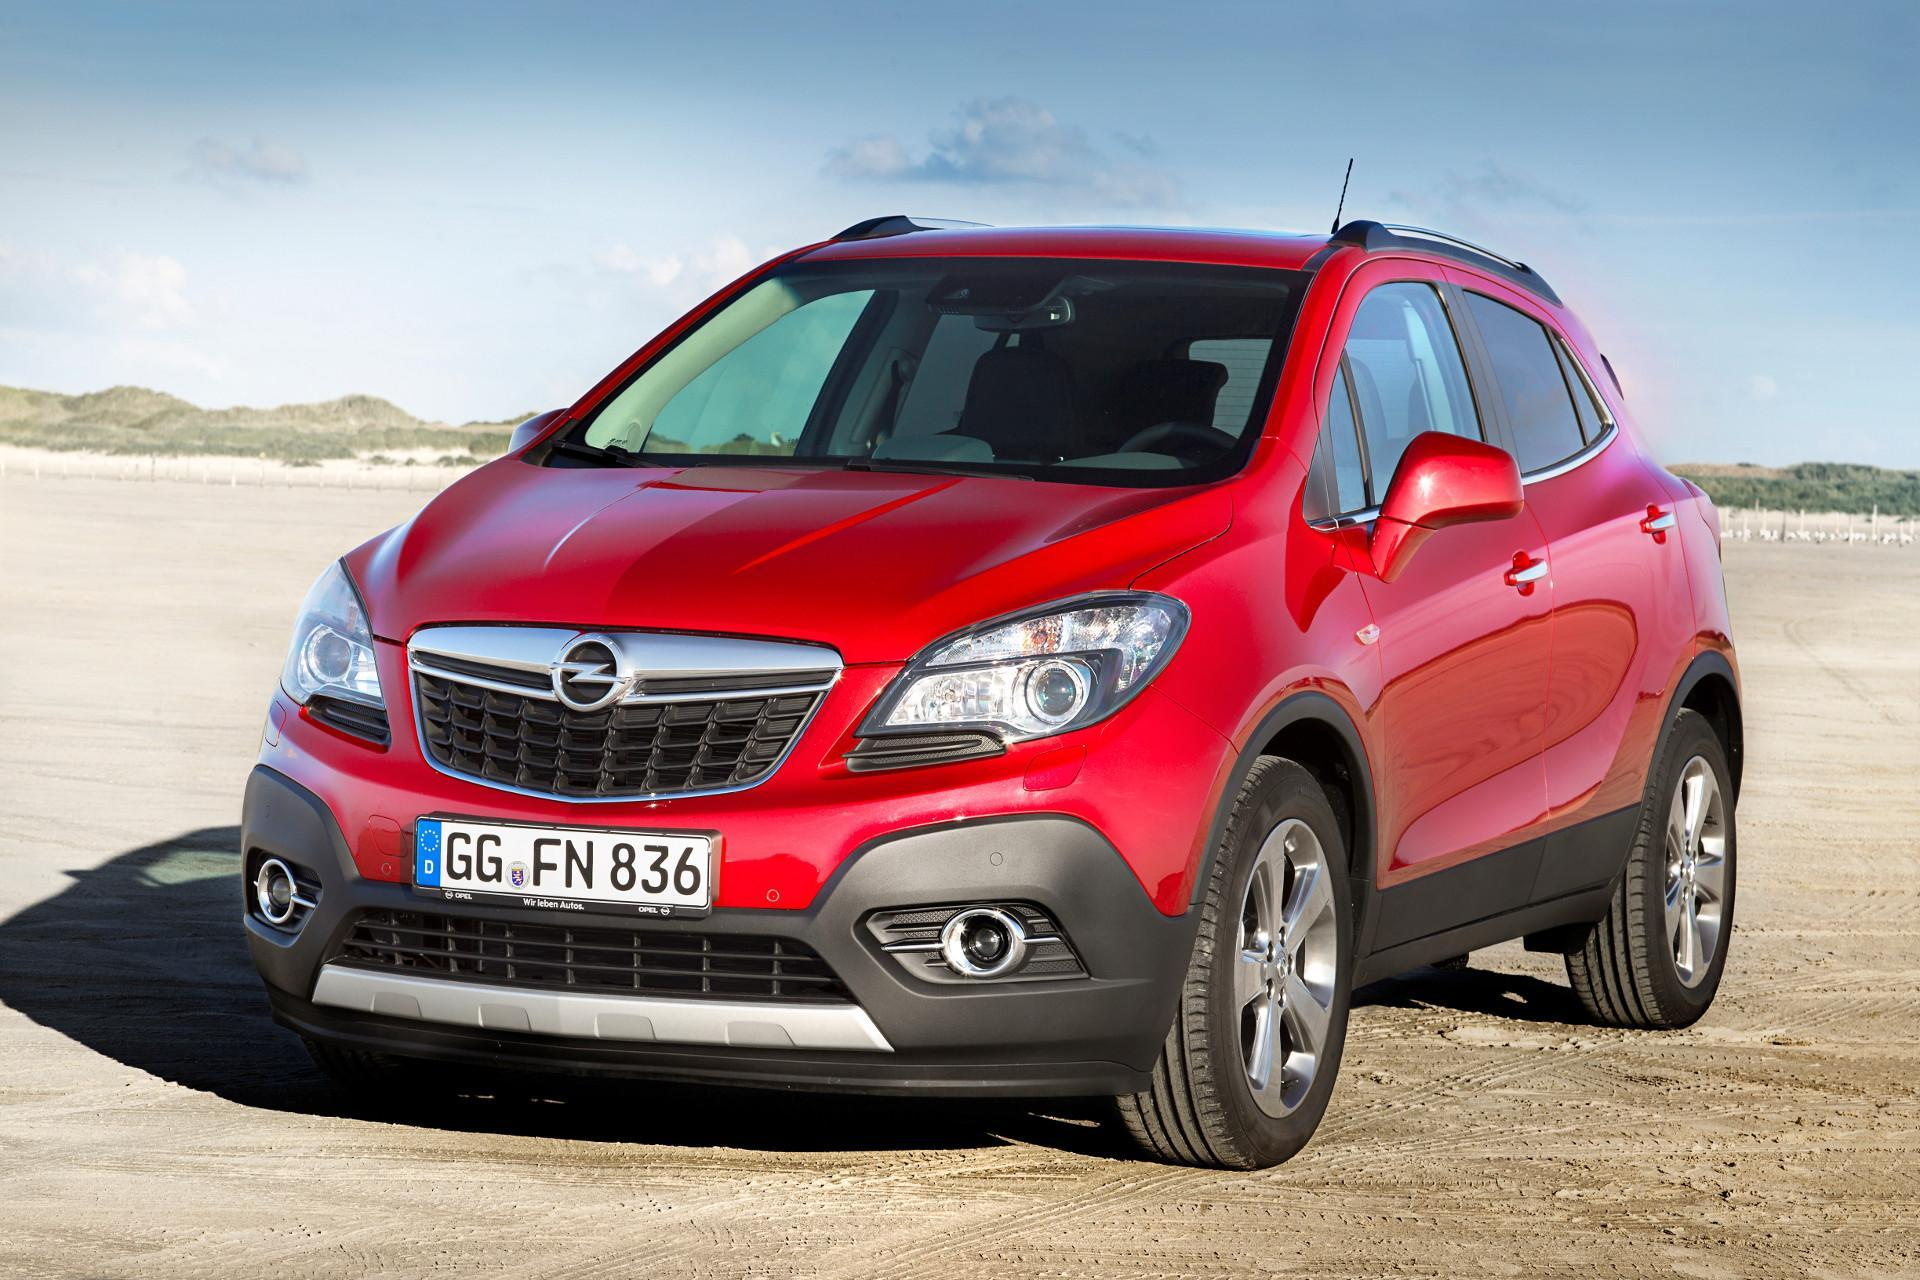 opel mokka ist firmenauto des jahres 2015. Black Bedroom Furniture Sets. Home Design Ideas